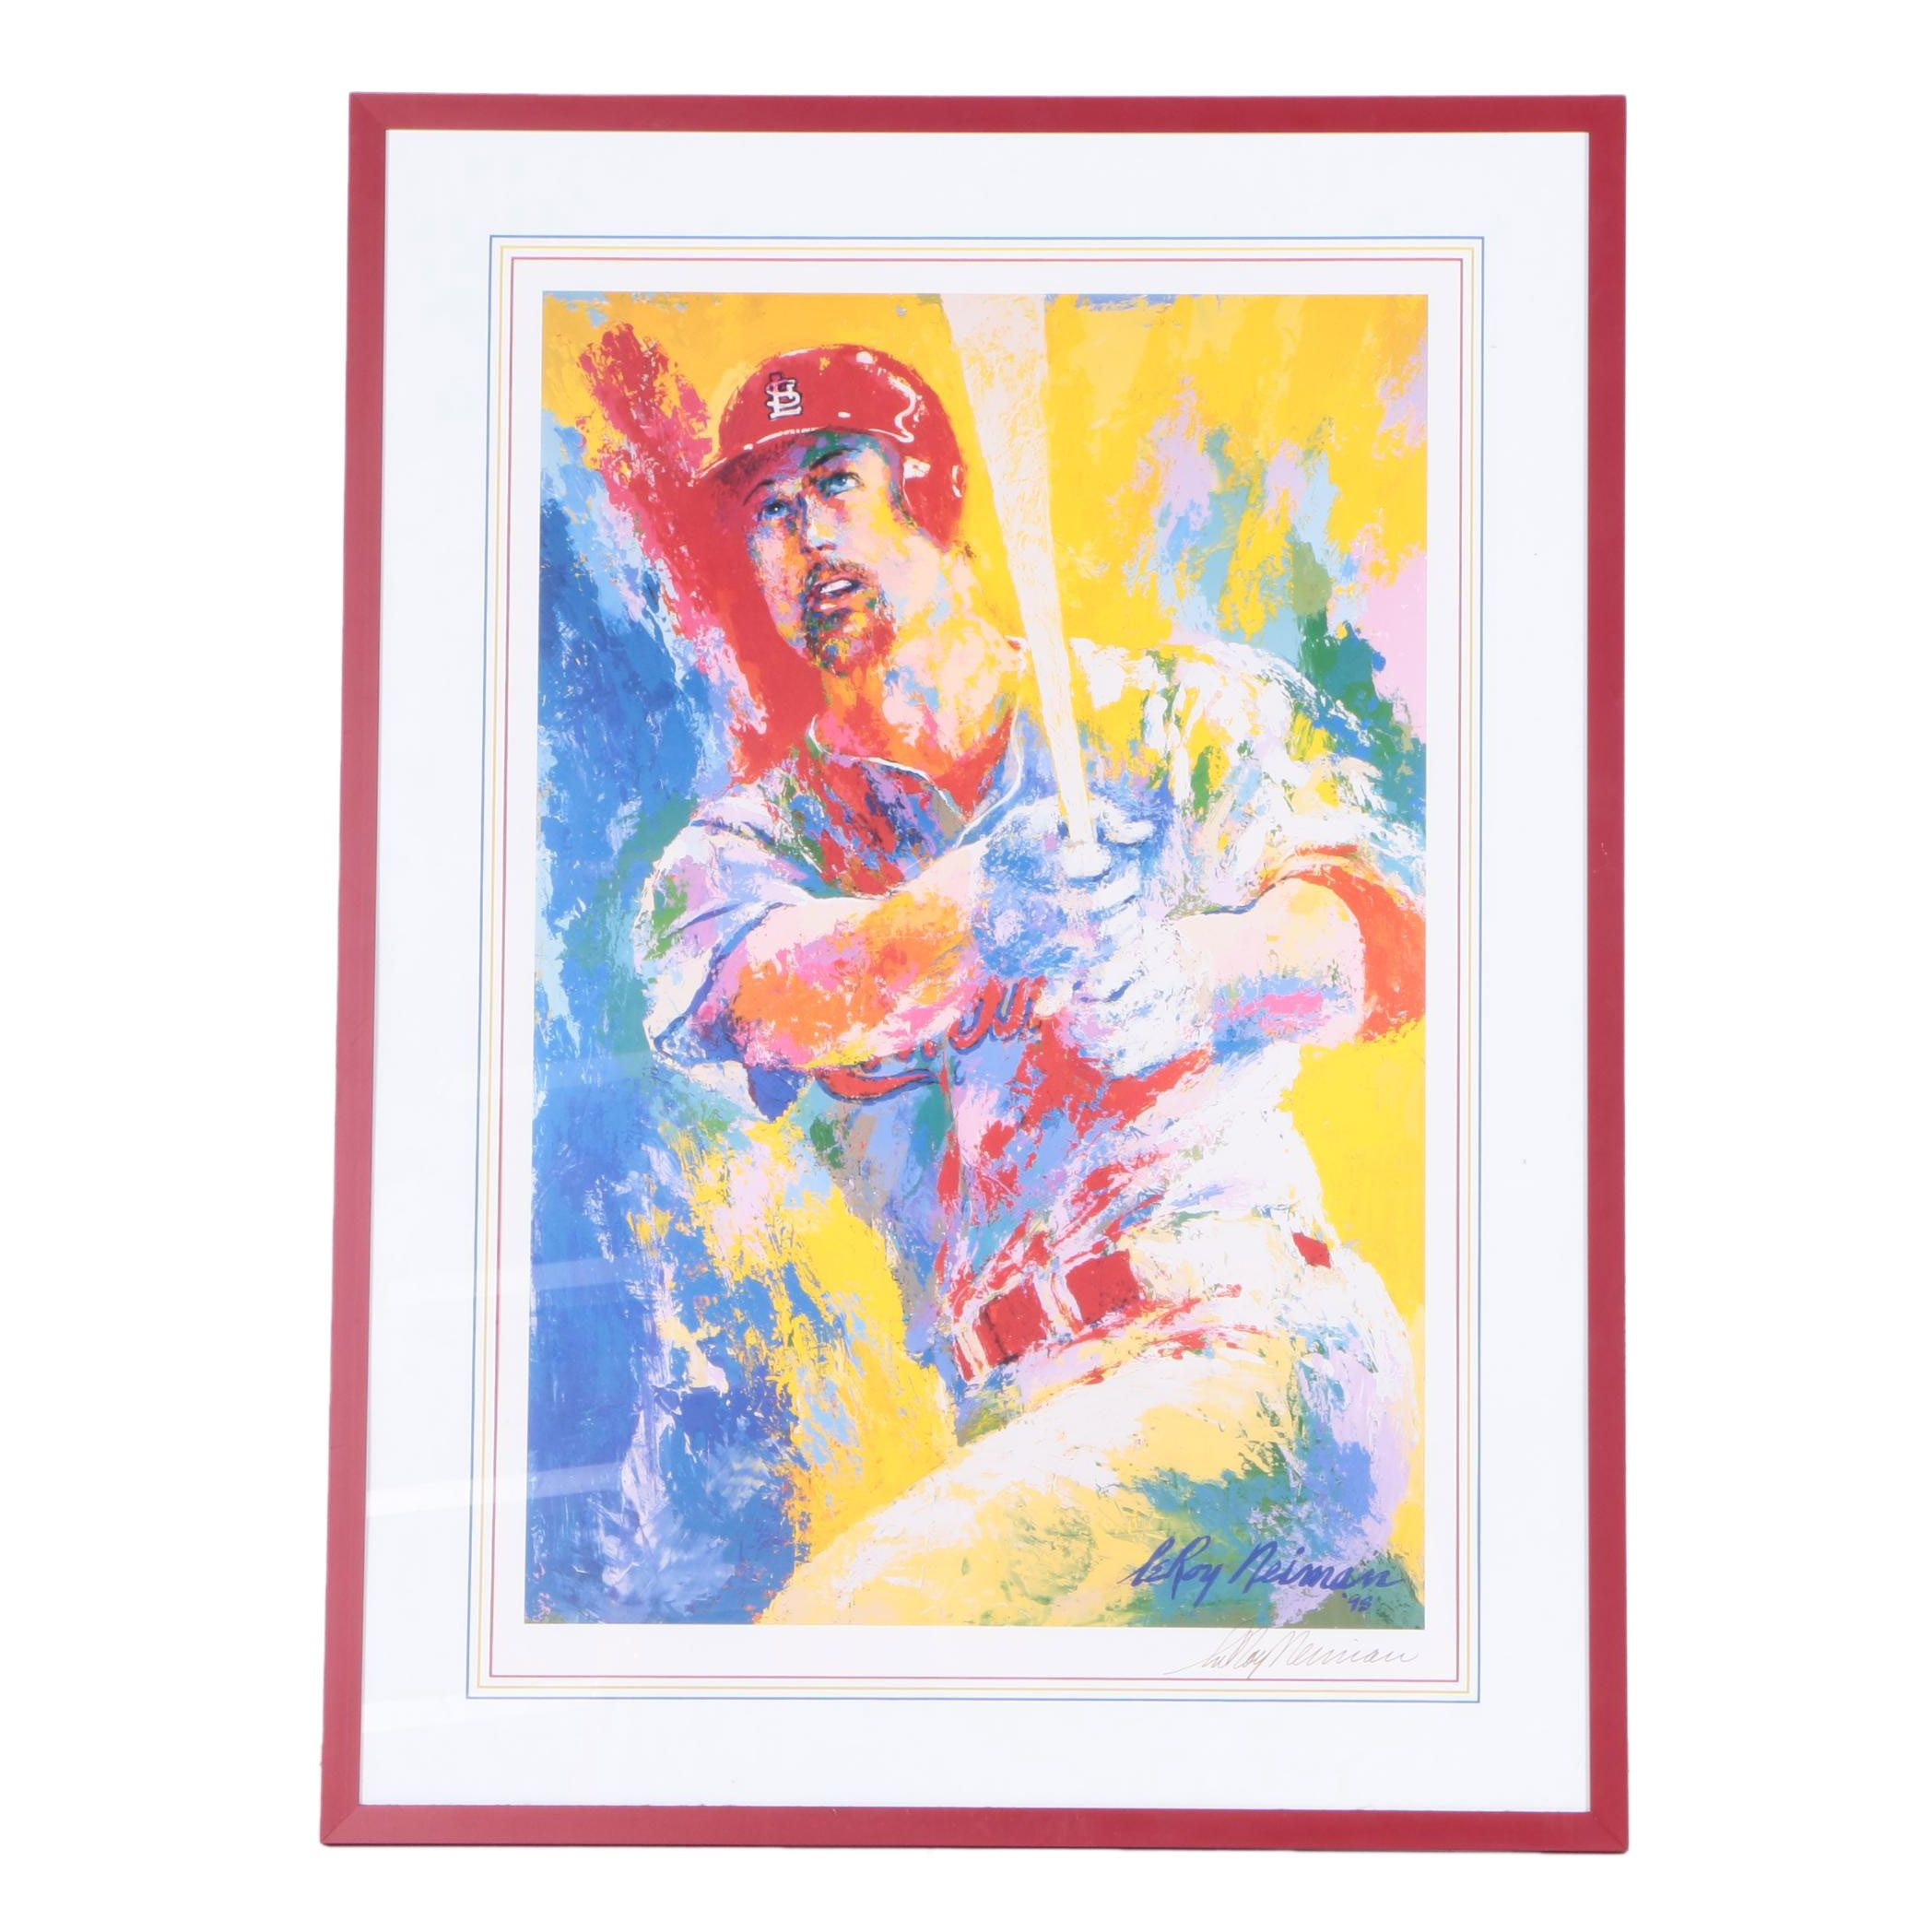 LeRoy Neiman Offset Lithograph of Mark McGwire